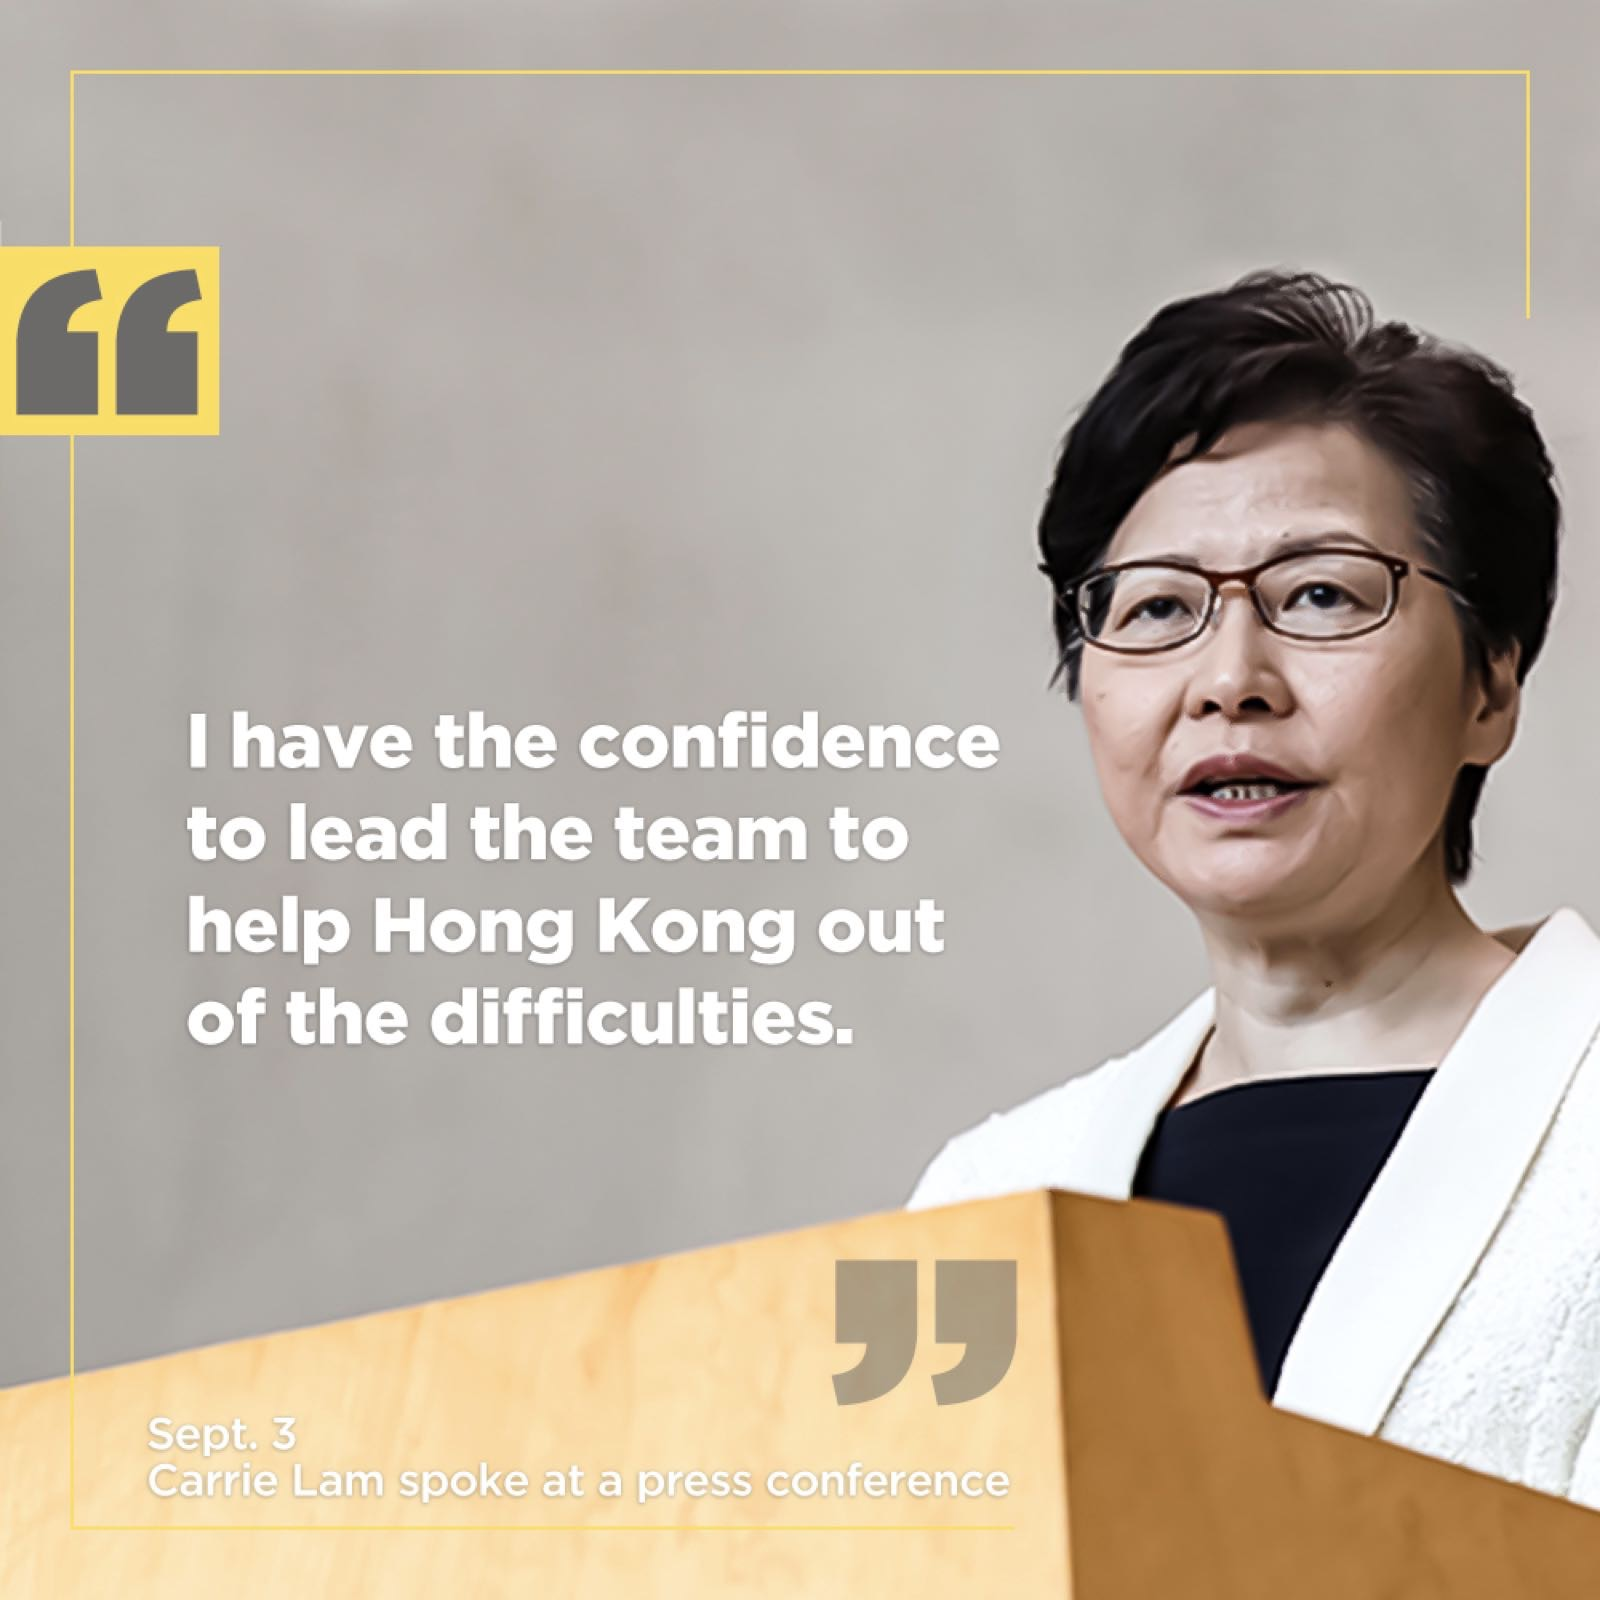 Highlights of Carrie Lam's press conference